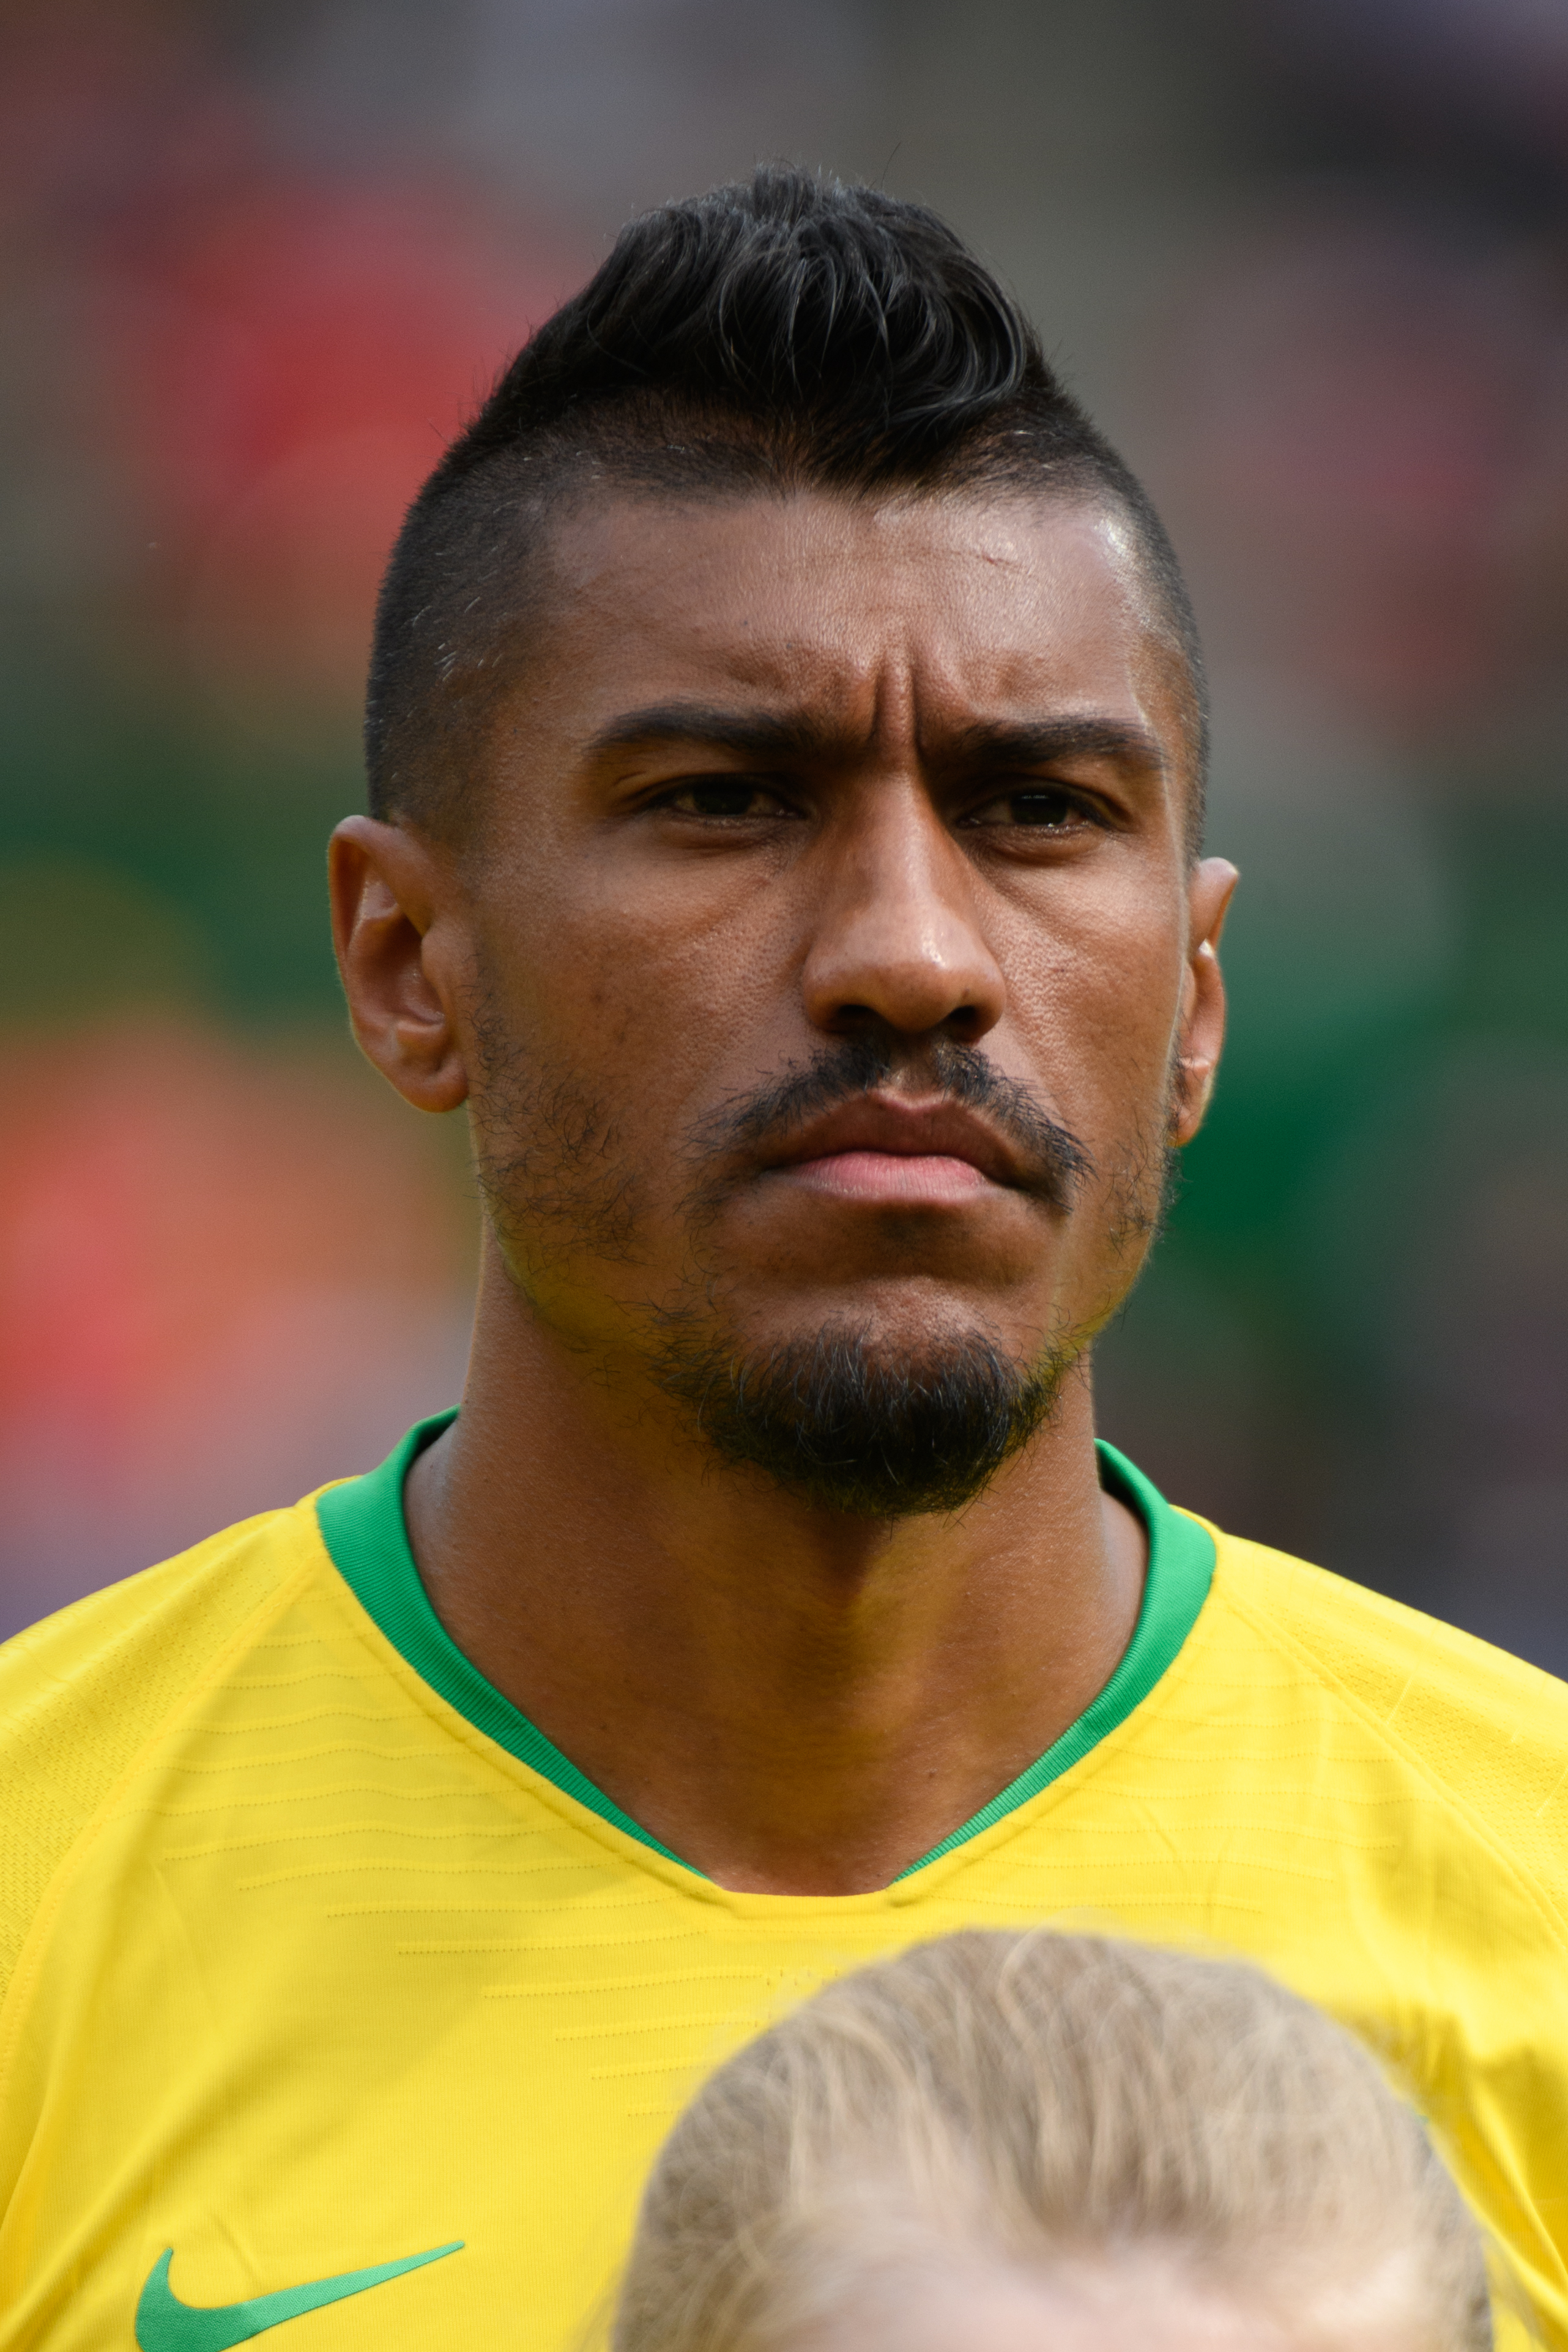 The 30-year old son of father José Paulo Bezerra Maciel and mother Erika Lima Nascimento Paulinho in 2018 photo. Paulinho earned a  million dollar salary - leaving the net worth at 4 million in 2018